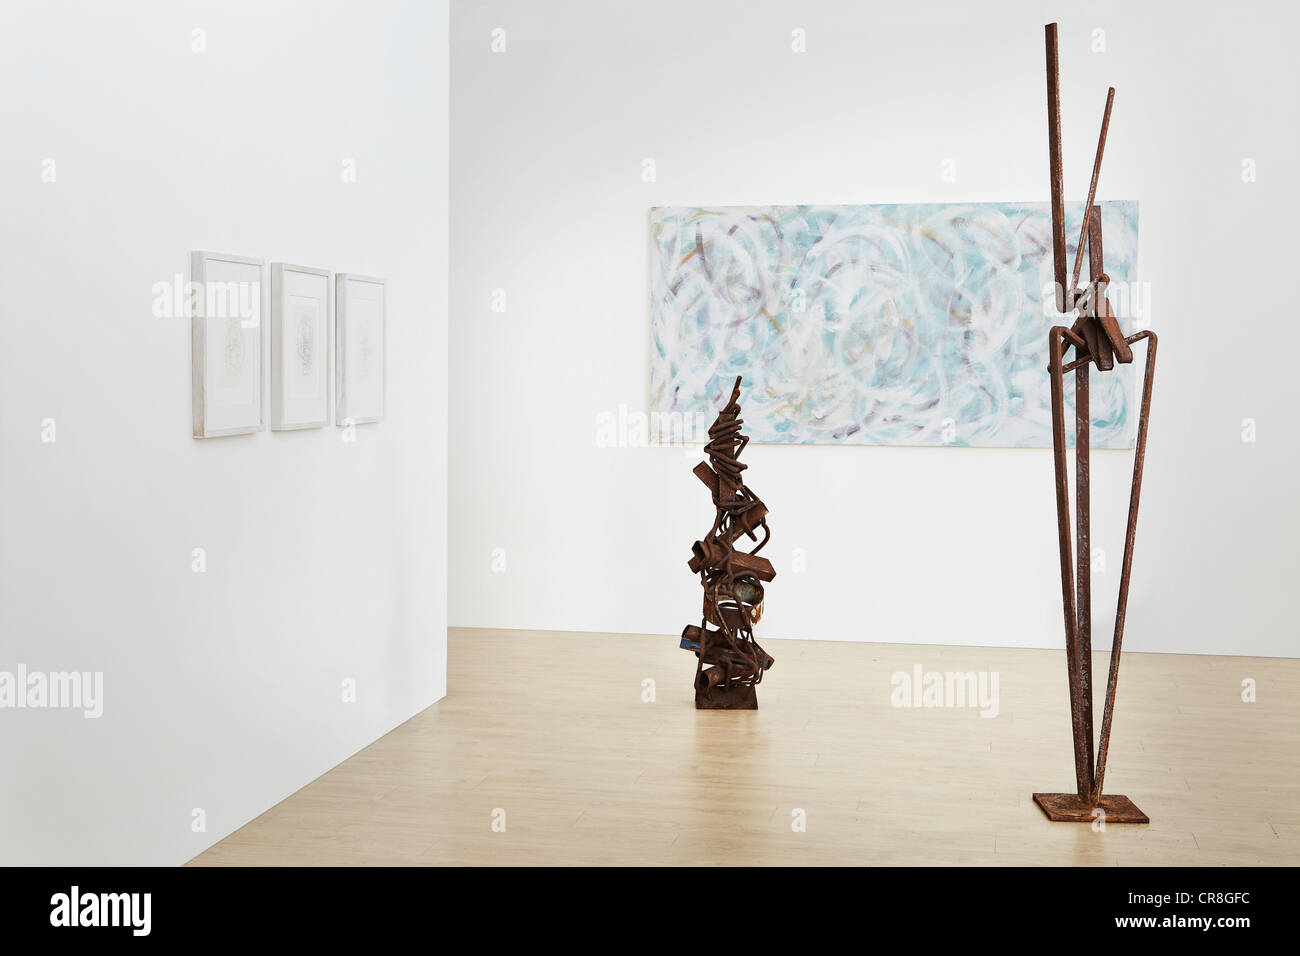 La sculpture et la peinture en art gallery Photo Stock